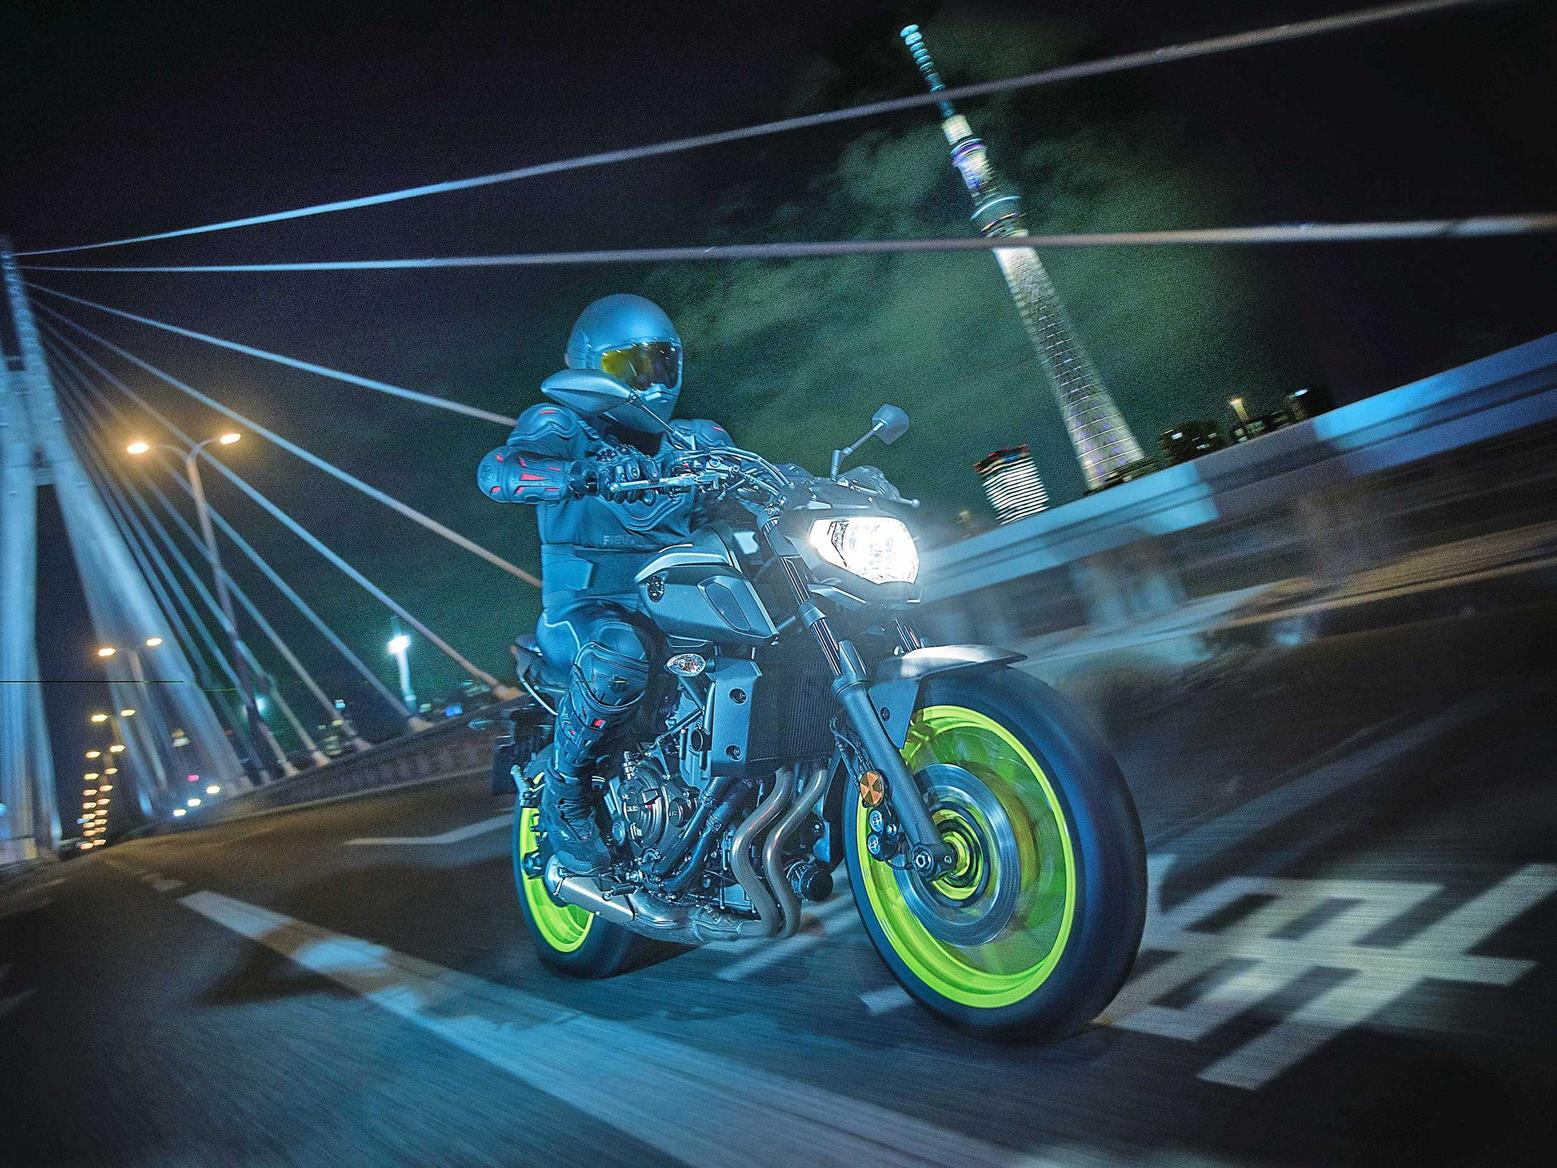 Yamaha set a whole new standard for affordable, but fun bikes with the MT-07